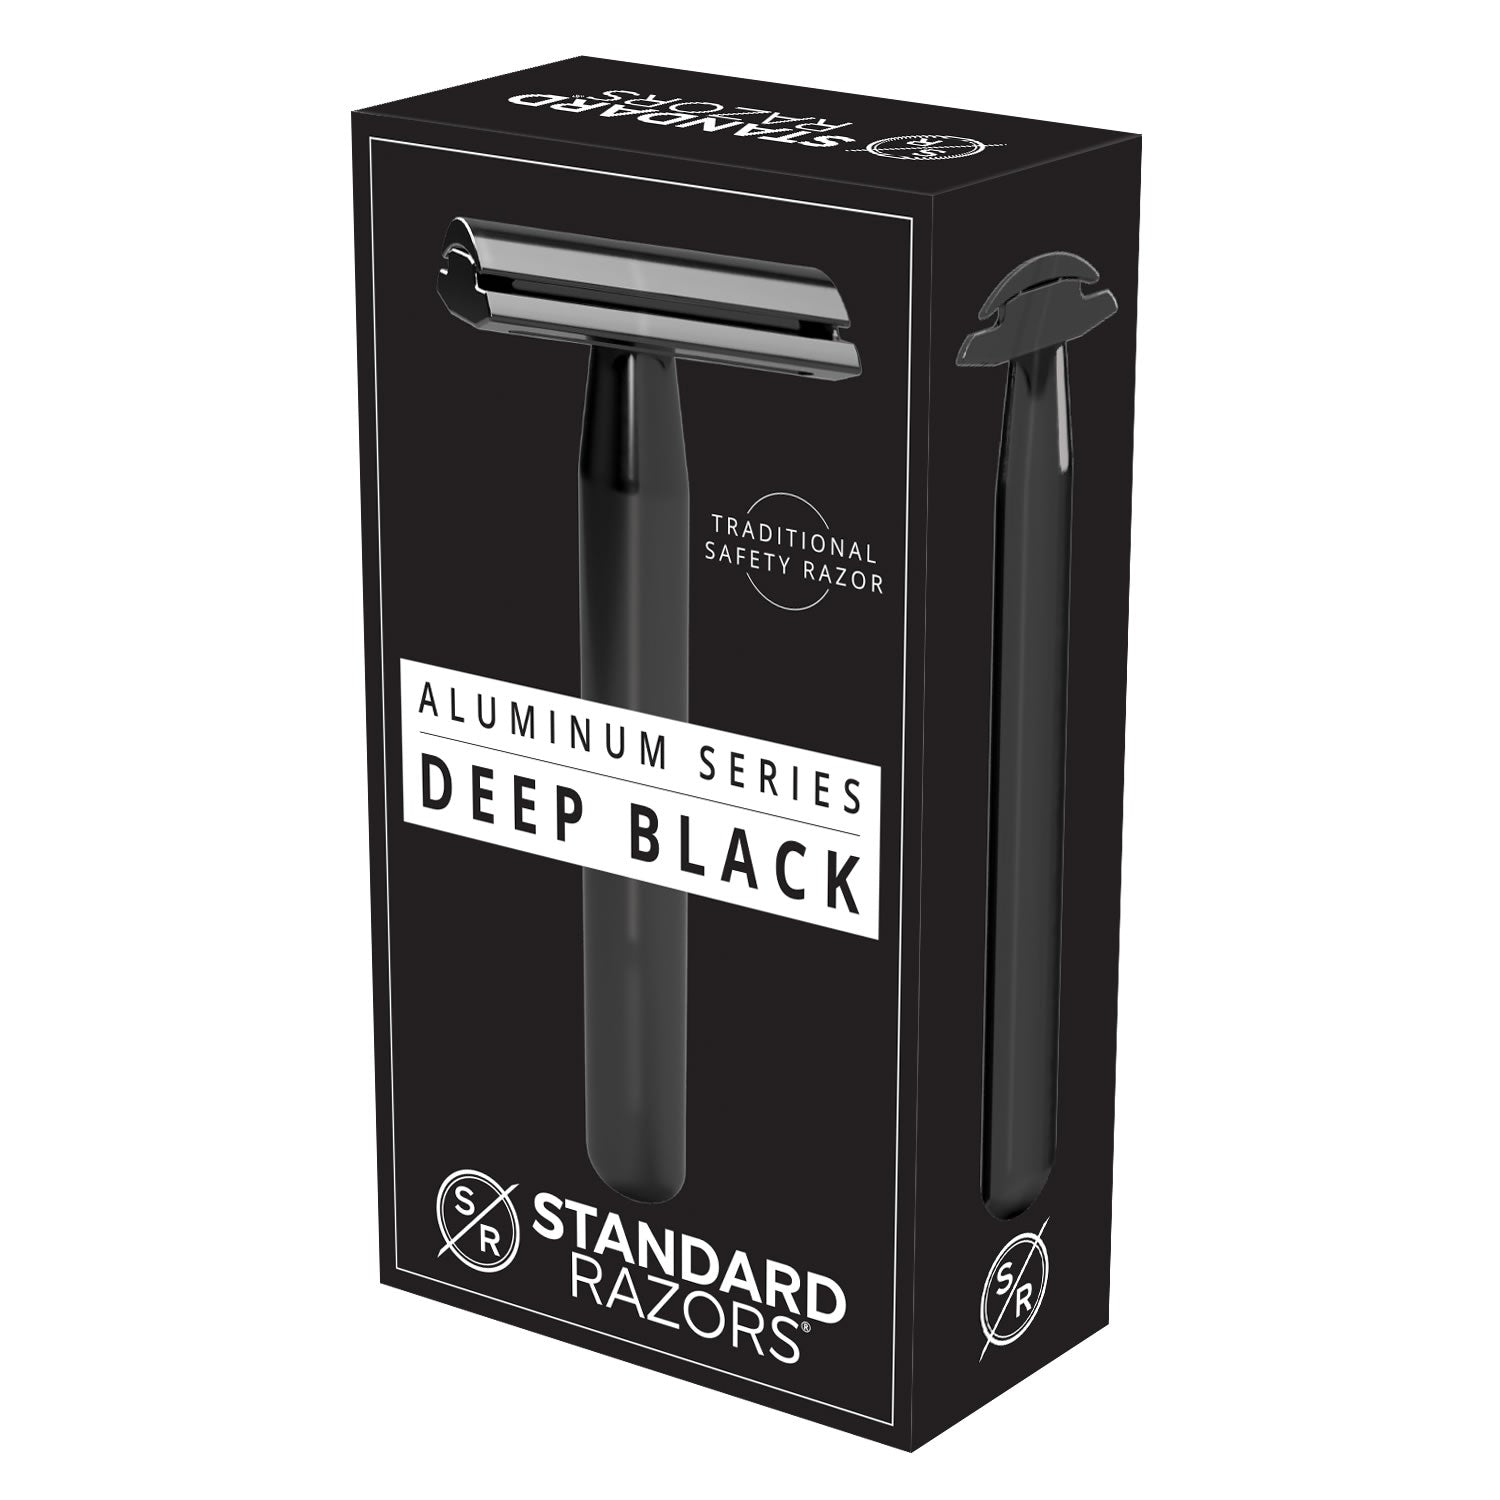 Standard Razors - Aluminum Series - Double Edge Safety Razor (Deep Black)